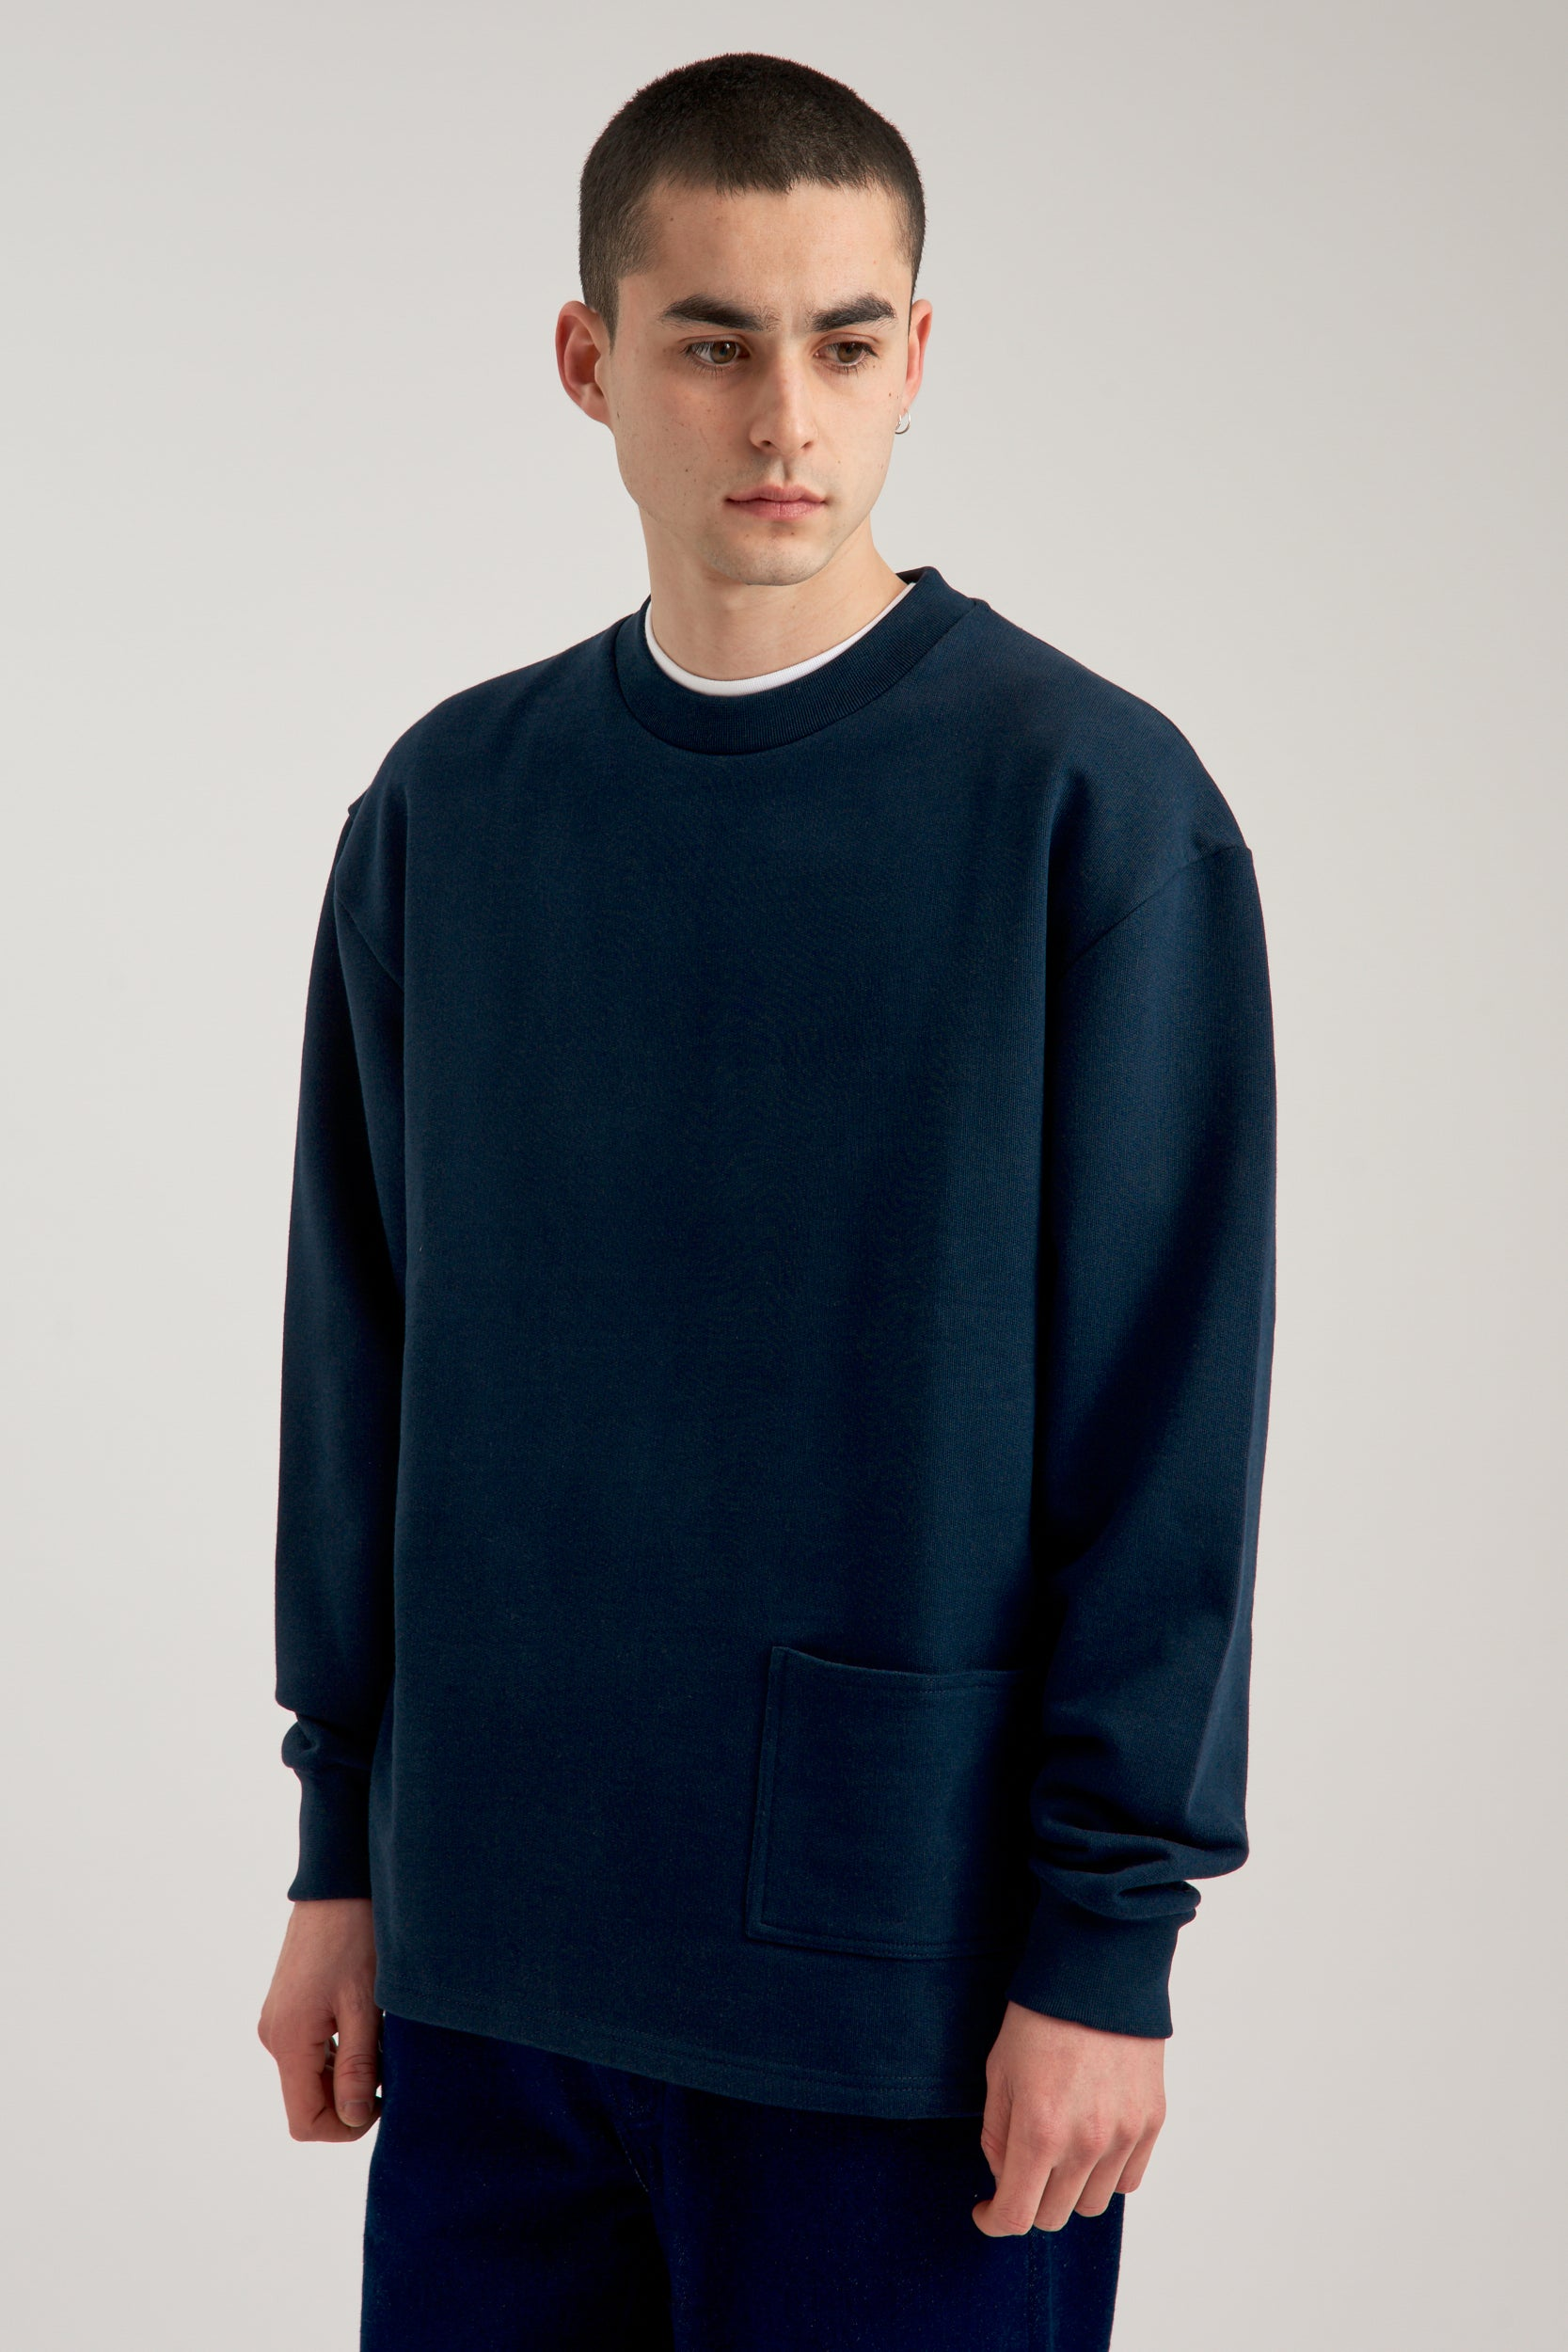 Charles Pocket Navy Sweater